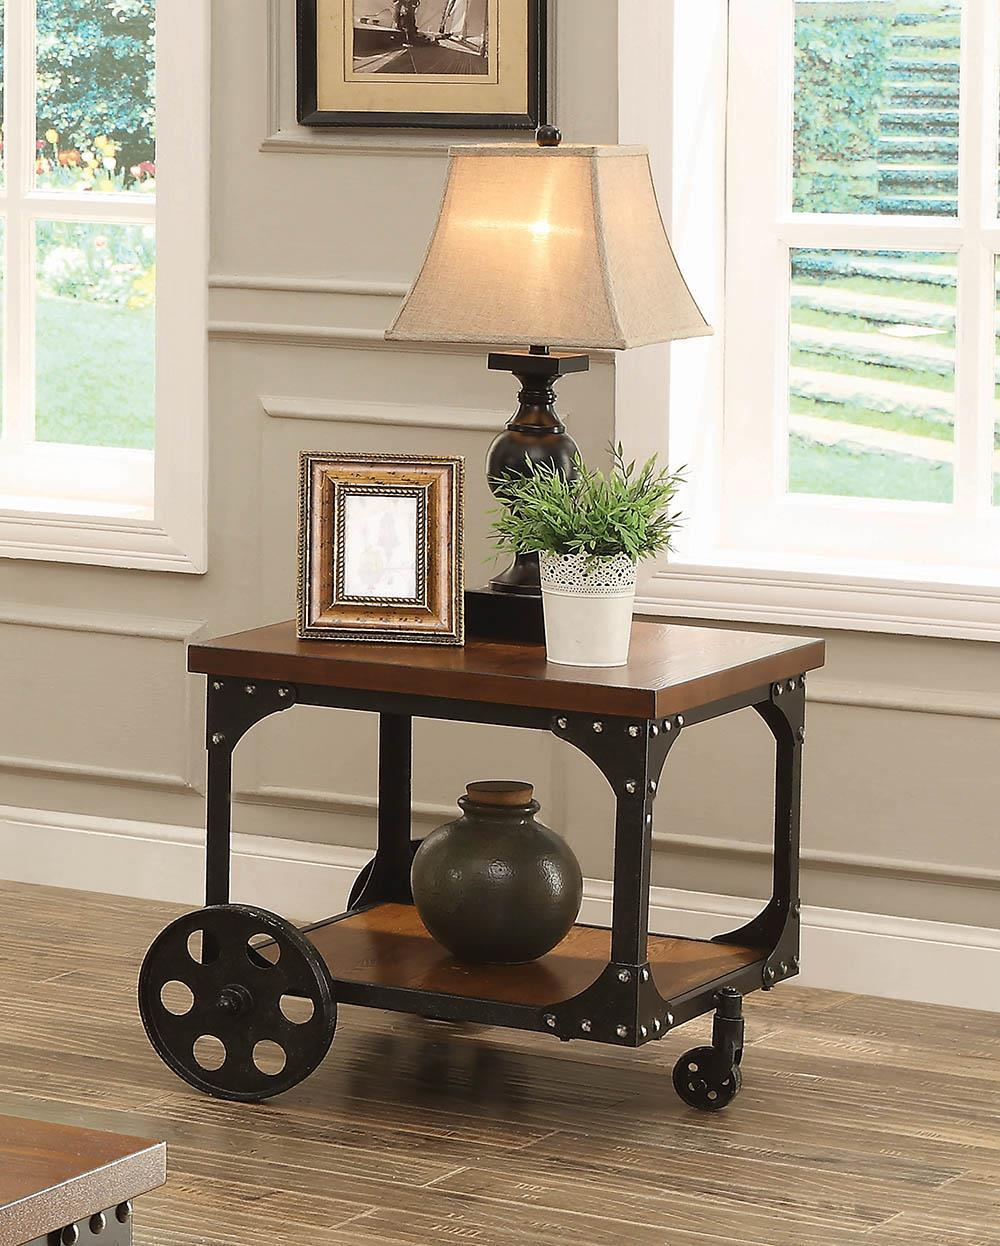 Living Room : Industrial/rustic Occasional Tables - Roy End Table With Casters Rustic Brown